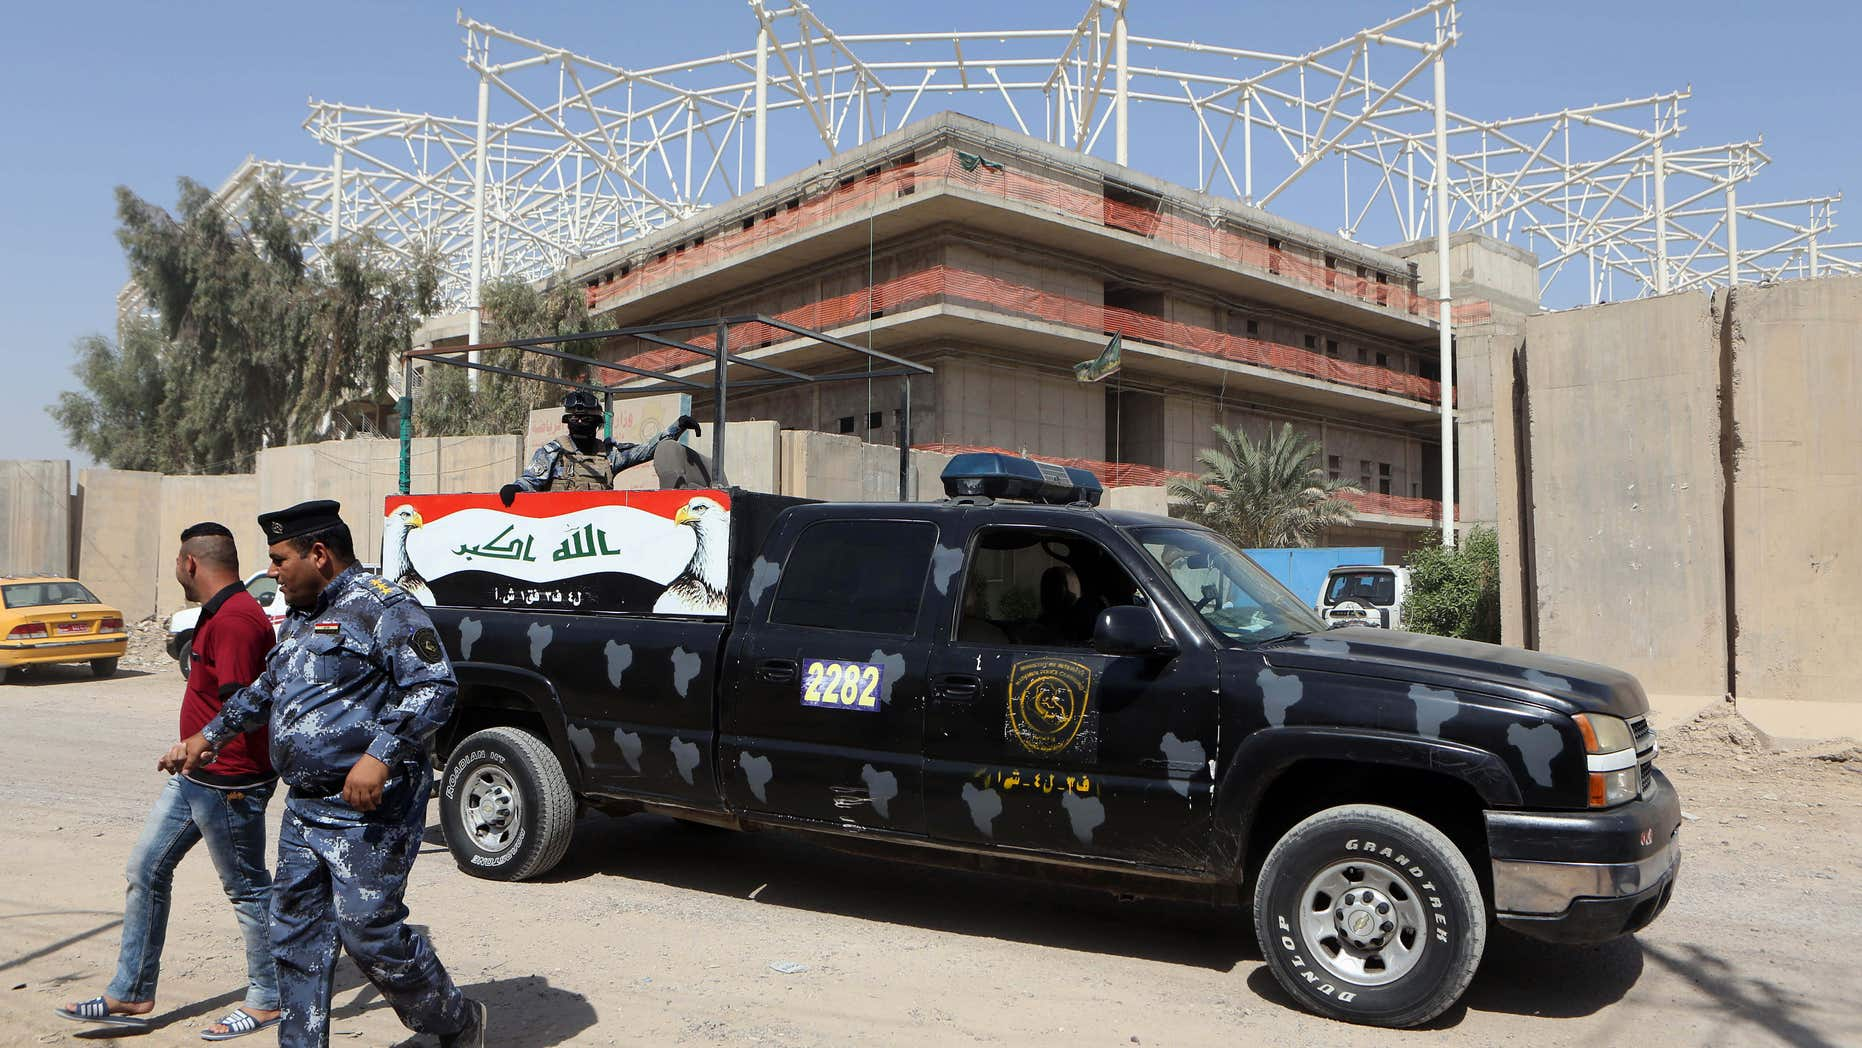 Sept. 2, 2015: Iraqi security forces guard the entrance to a sports complex being built by a Turkish construction company, in the Shiite district of Sadr City, Baghdad, Iraq.